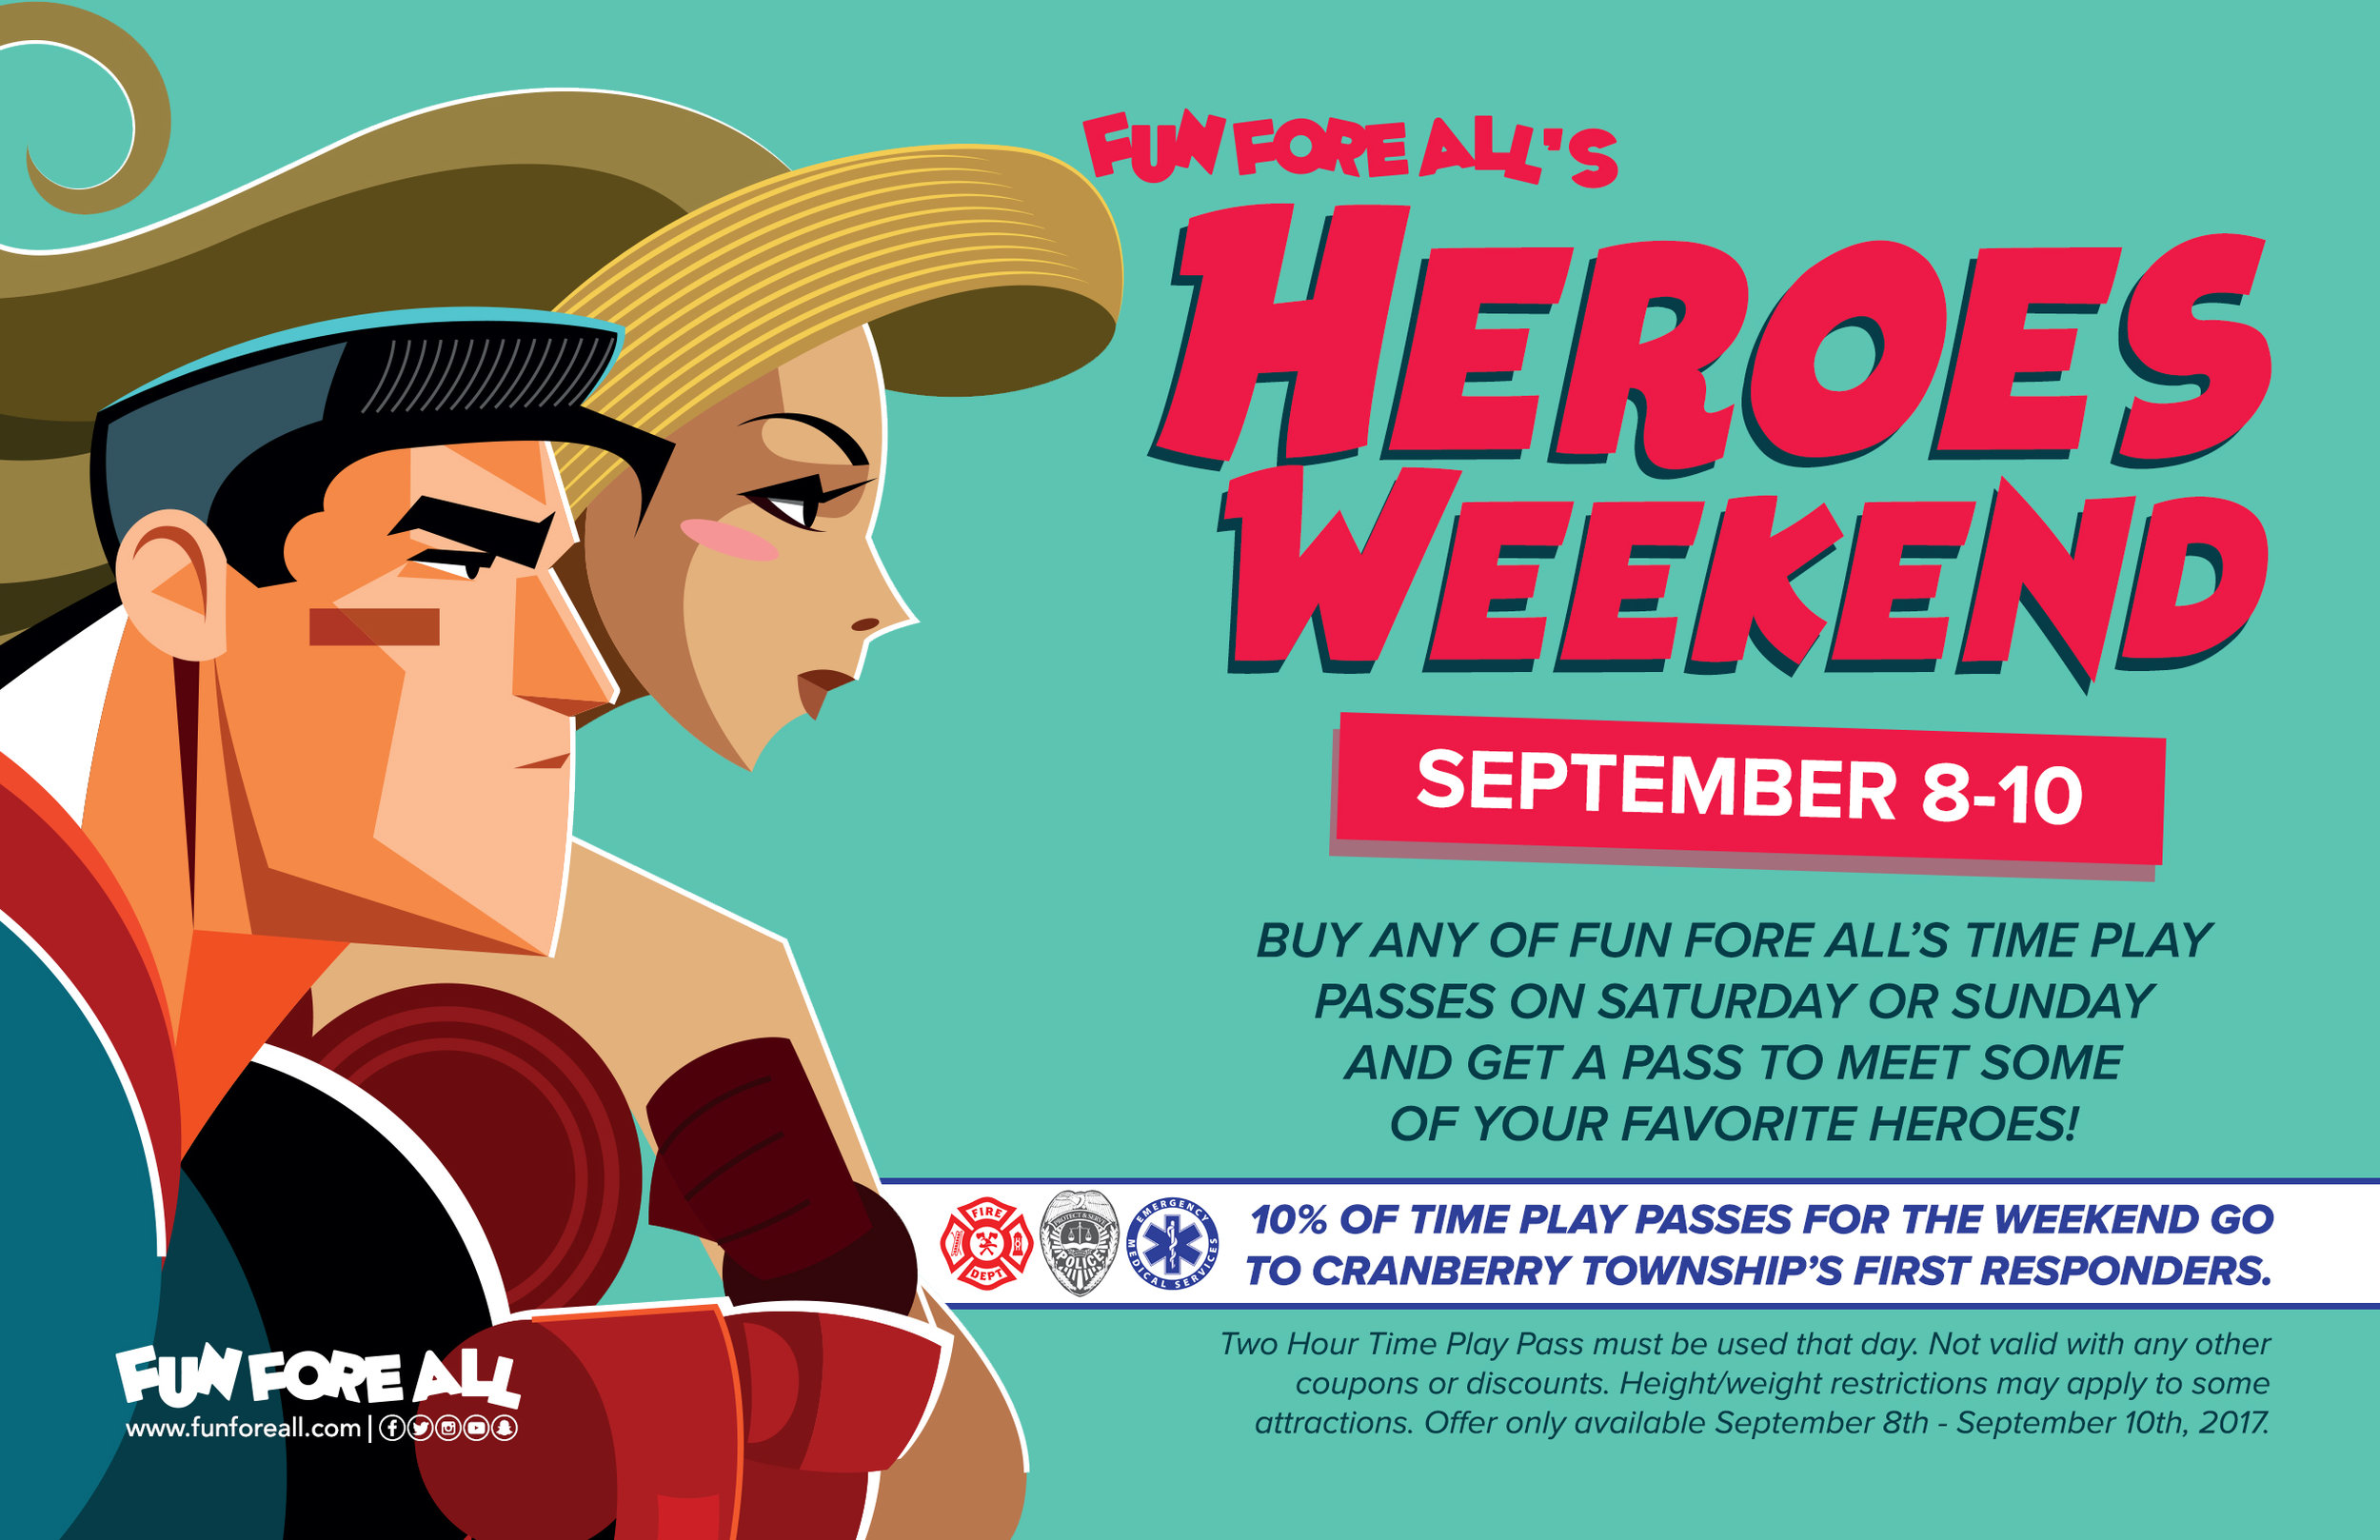 HEROES WEEKEND FLYER